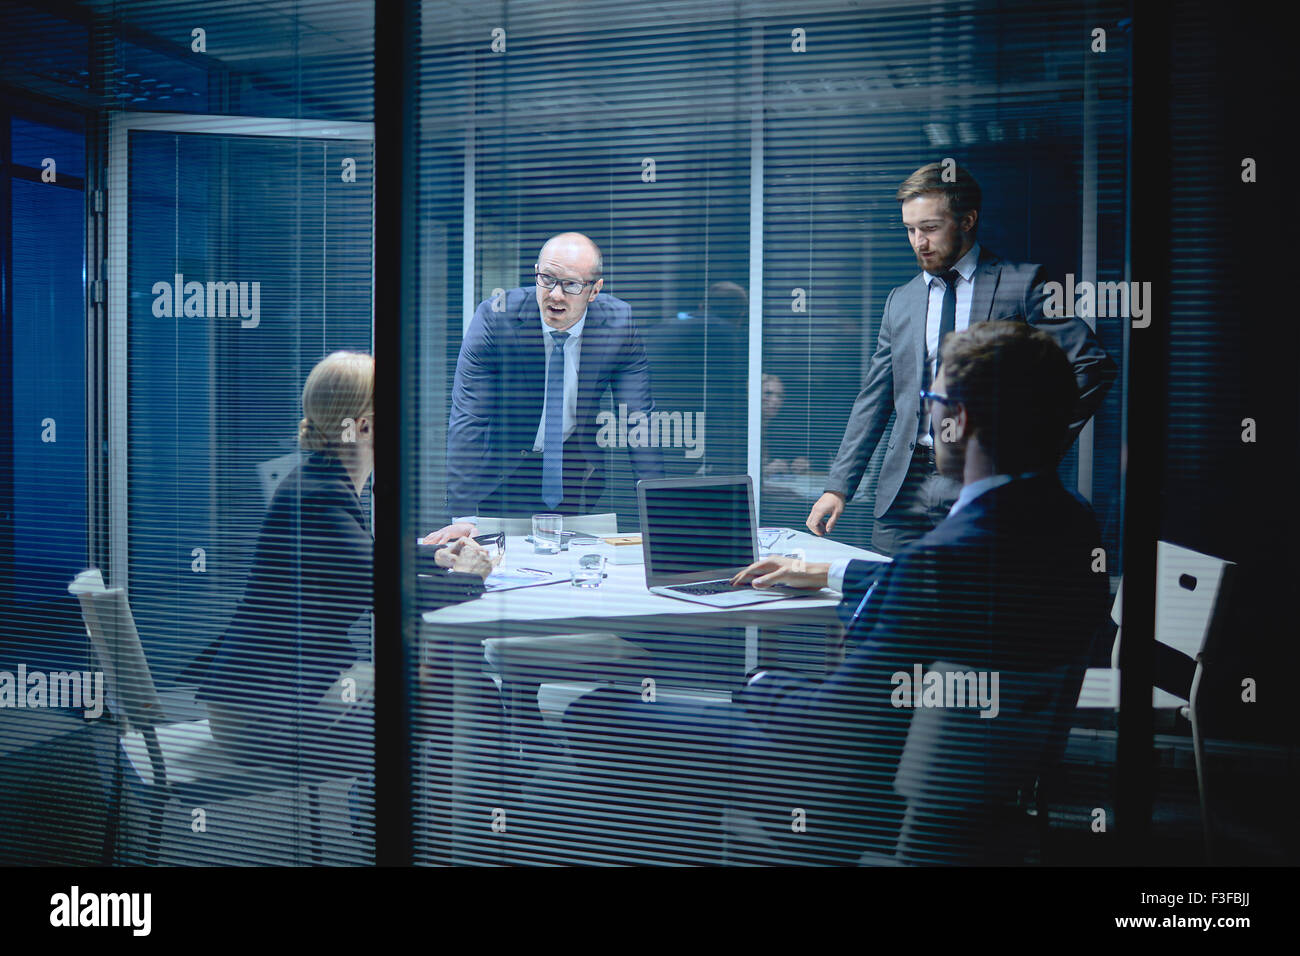 Group of co-workers discussing ideas at meeting in office - Stock Image